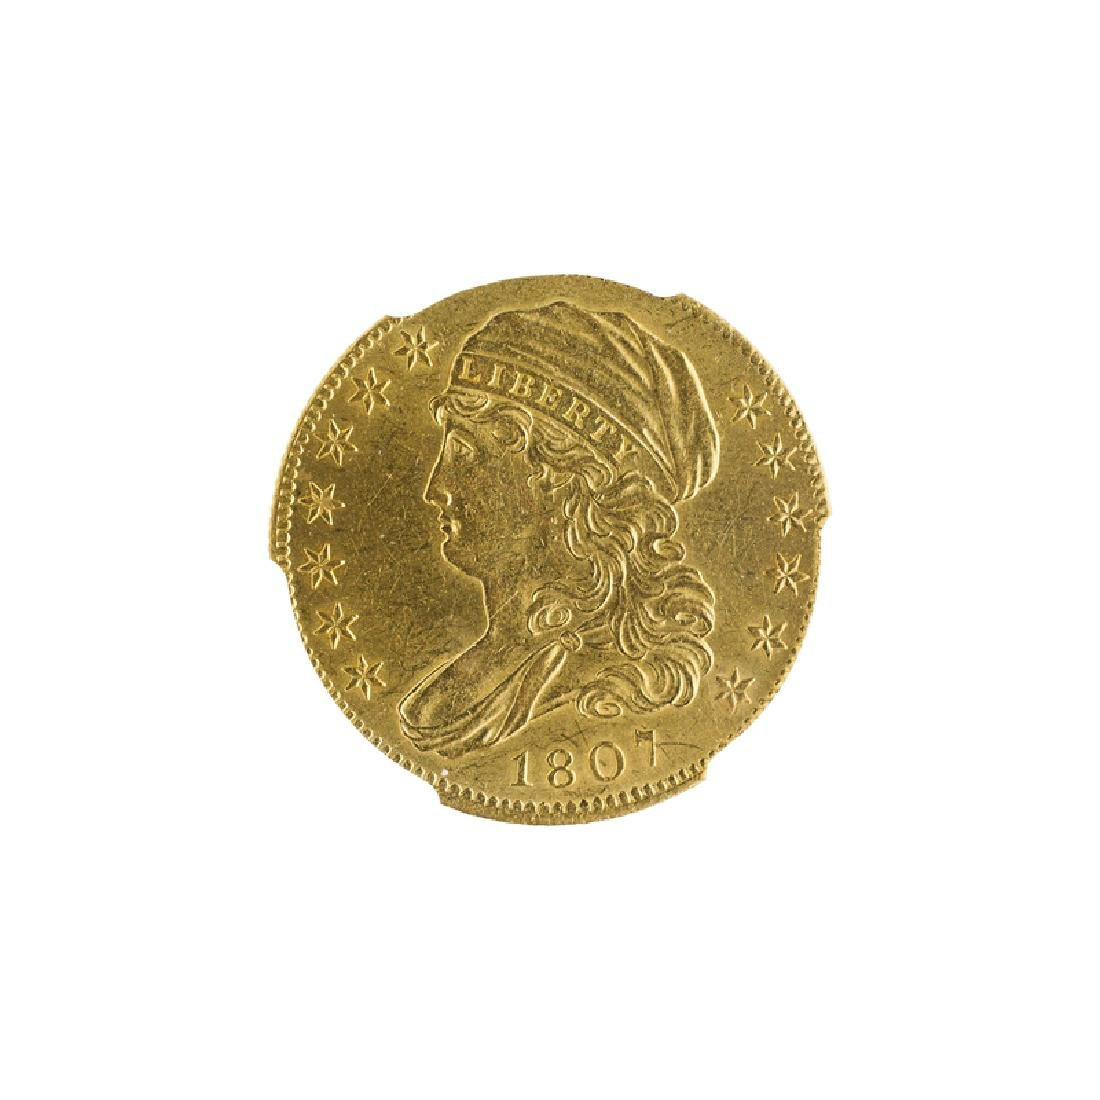 U.S. 1807 $5.00 CAPPED BUST GOLD COIN